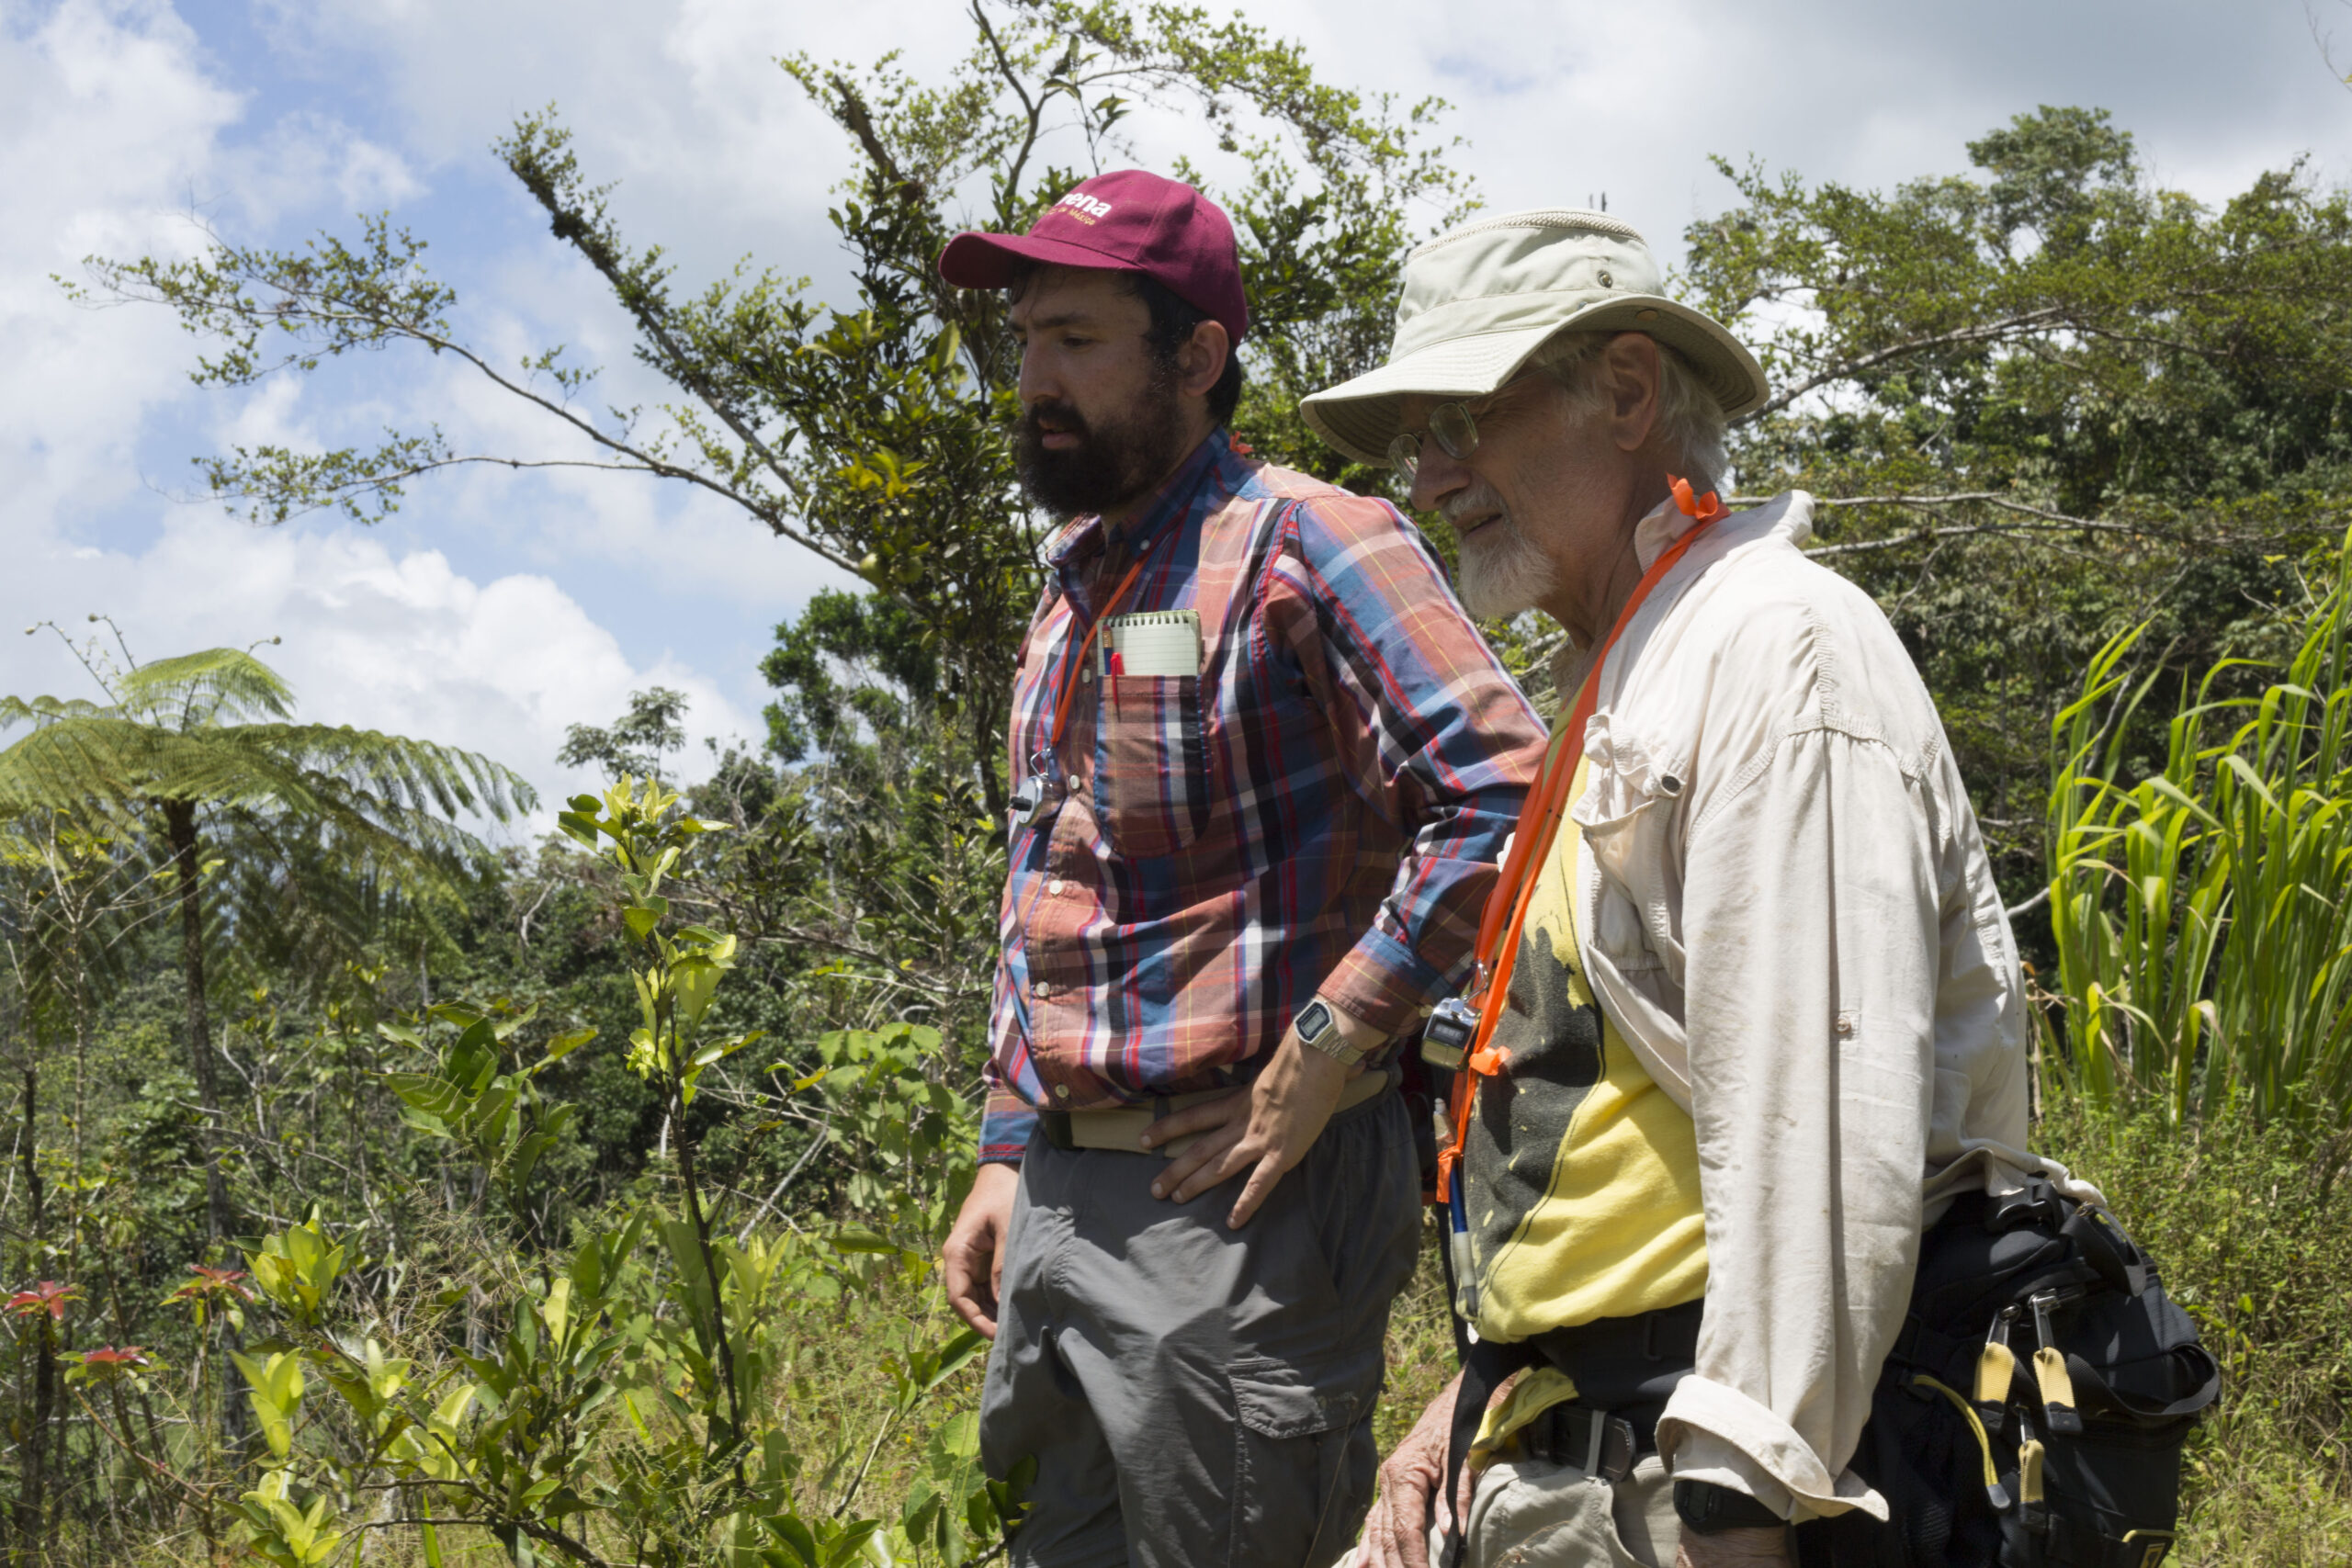 In this July 2018 photo, U-M doctoral student Zachary Hajian-Forooshani and U-M ecologist John Vandermeer survey a Puerto Rican coffee farm damaged less than a year earlier by Hurricane Maria. Image credit: Levi Stroud, U-M College of LSA